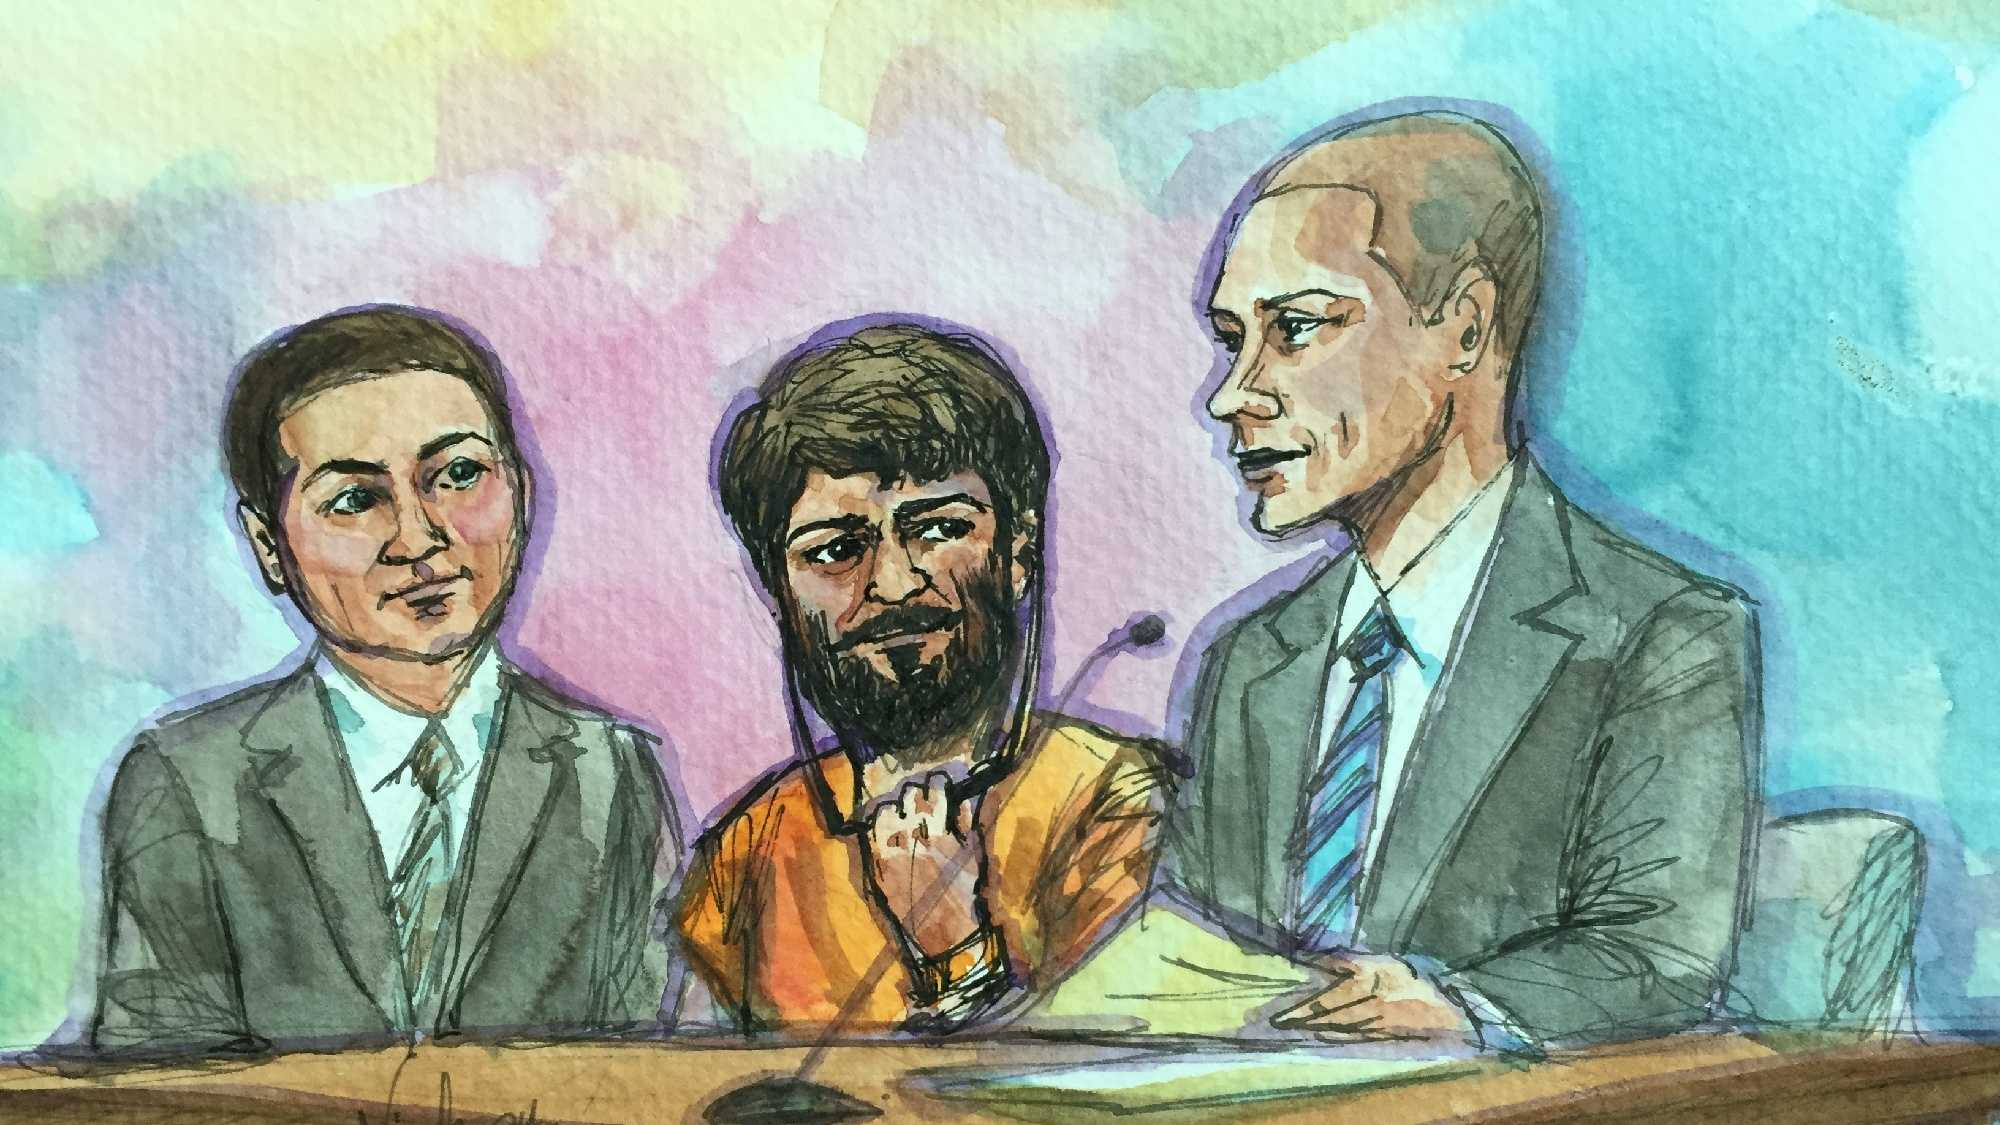 Court room drawing of Mohammed Younis Al-Jayab with his attorneys during his arraignment hearing on Friday, Jan. 22, 2016.